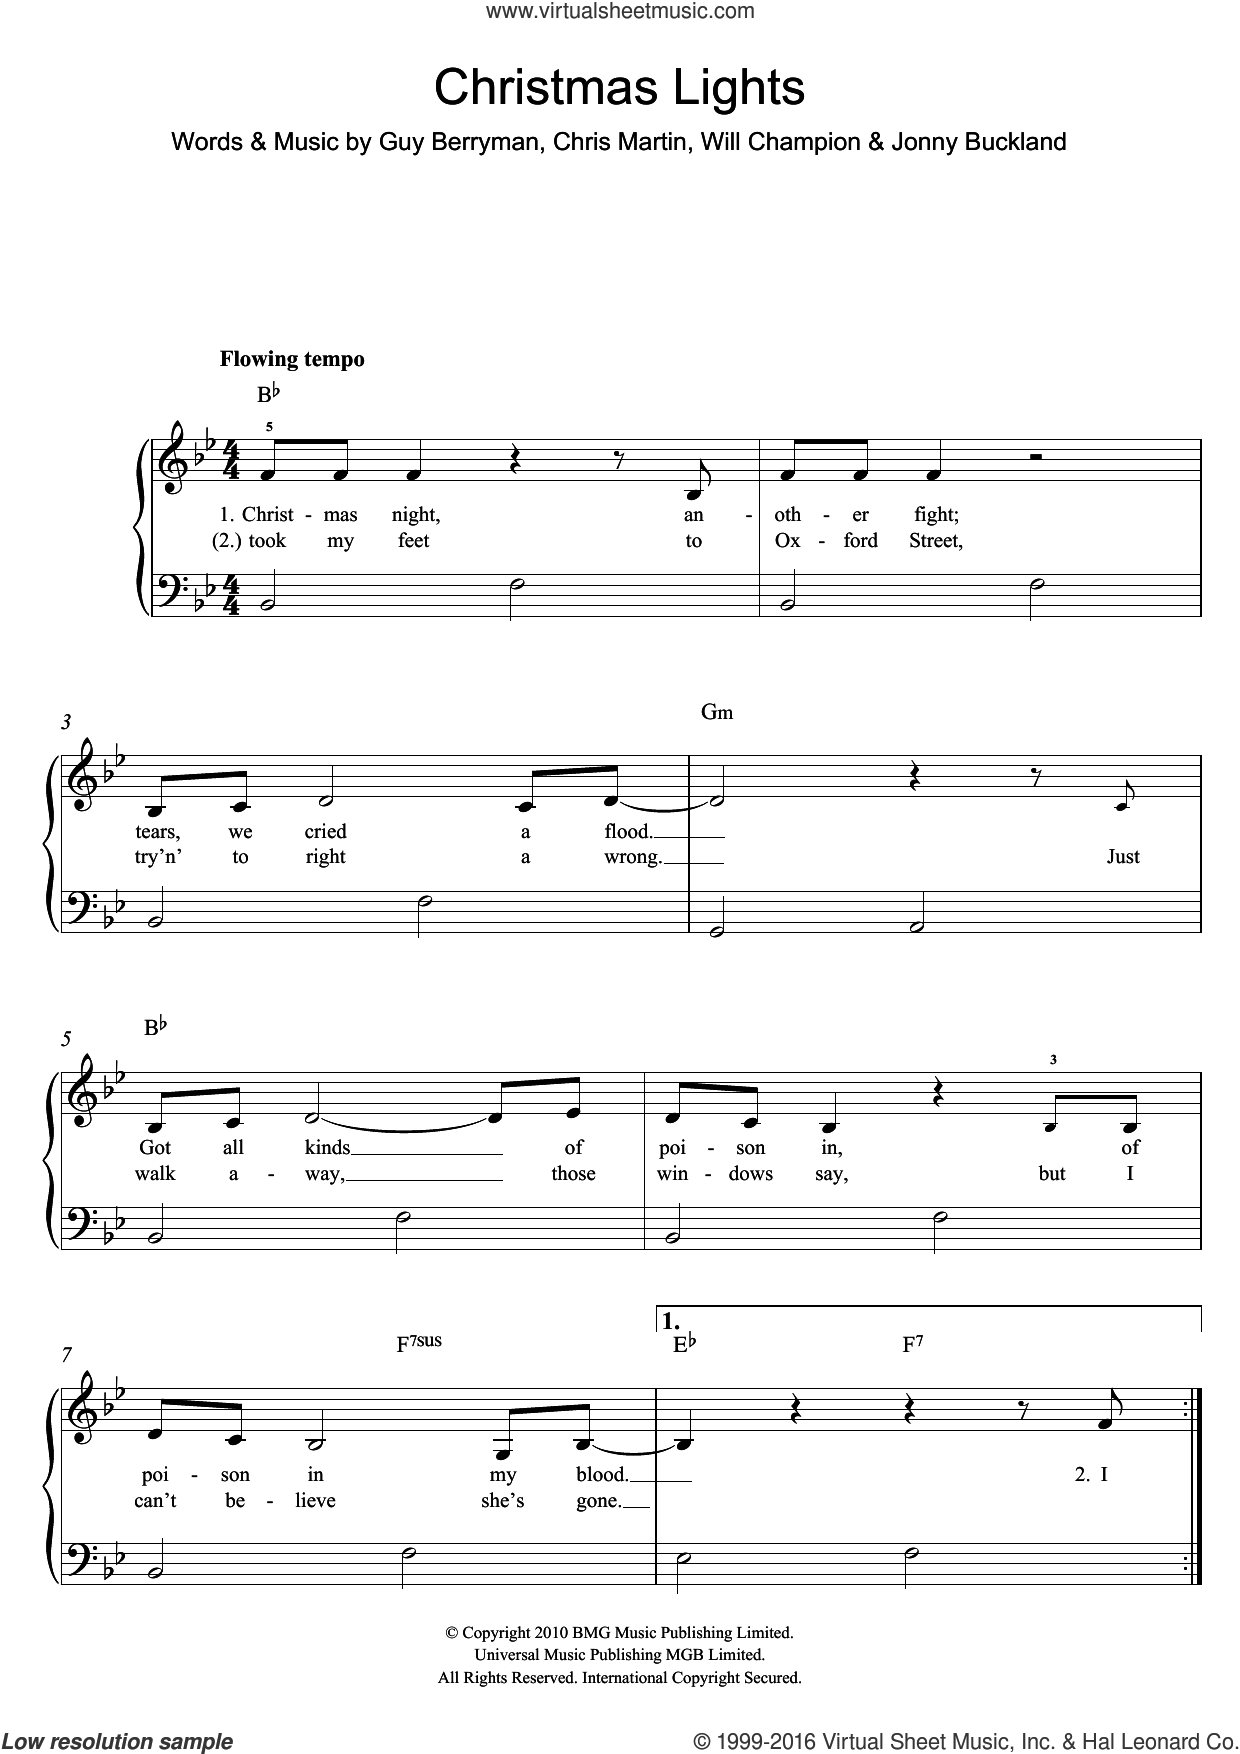 images of coldplay christmas lights sheet music patiofurn home images of coldplay christmas lights sheet music patiofurn home big christmas lights photo album